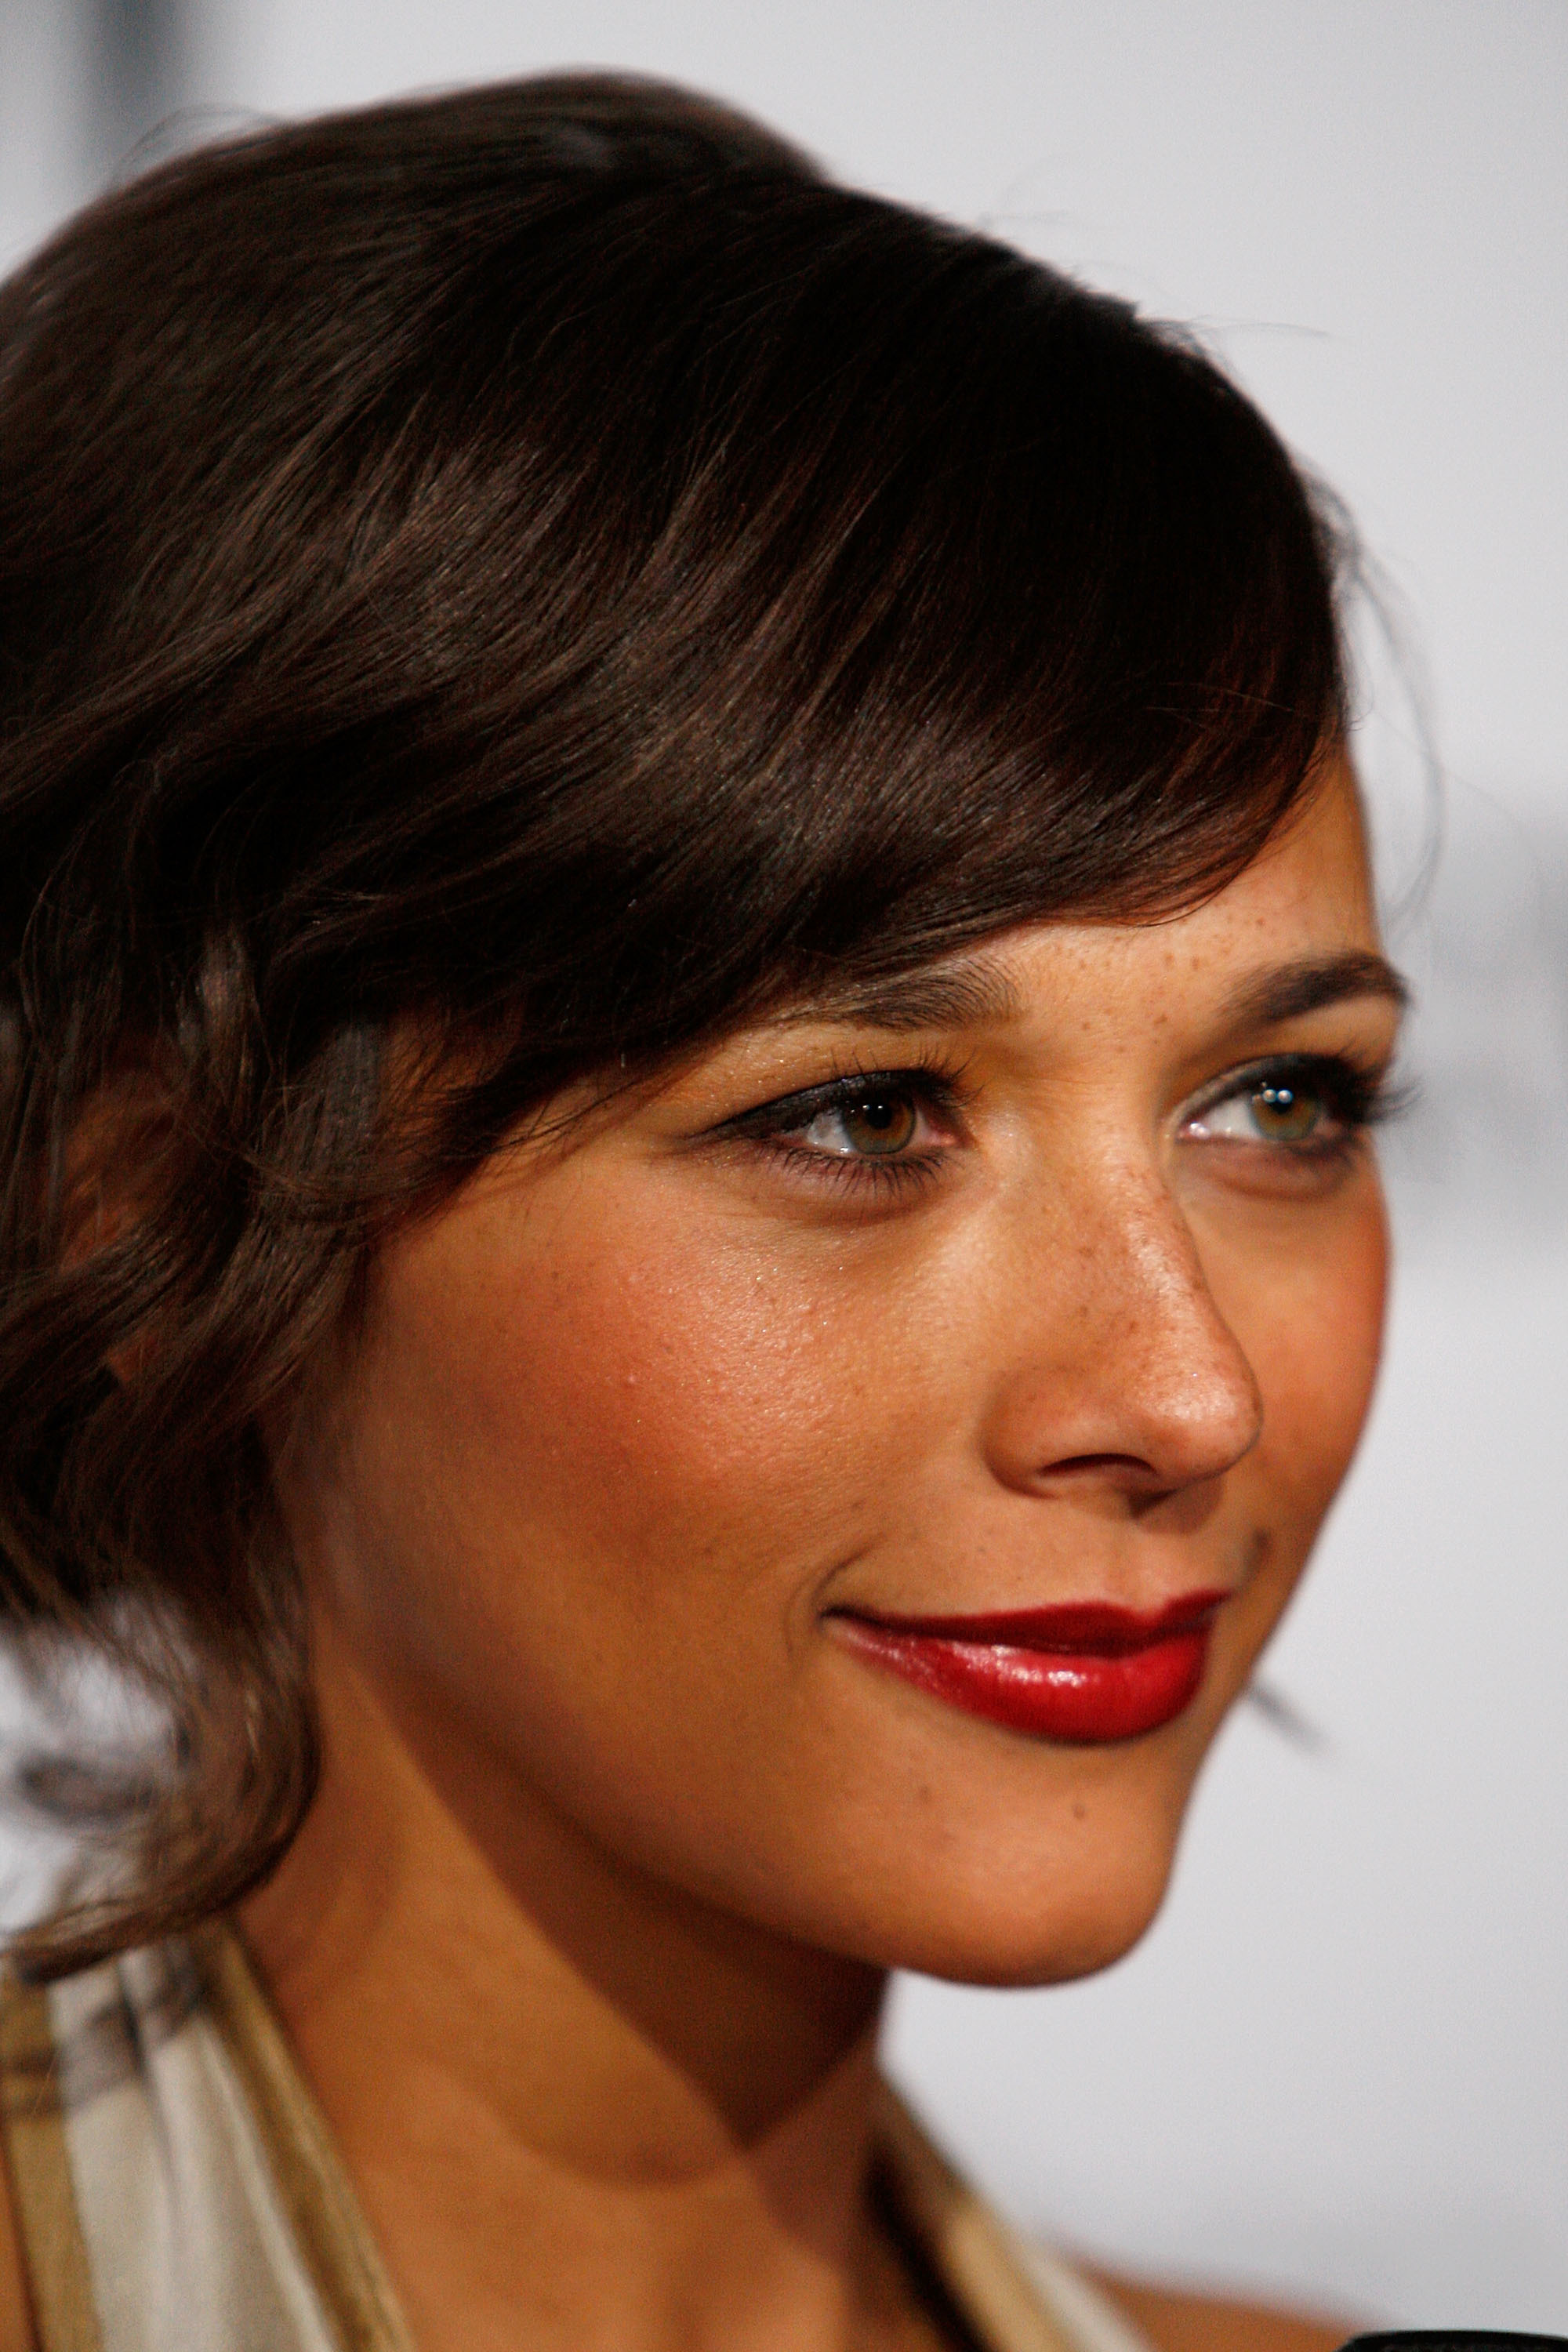 girl Women rashida jones HD Wallpaper